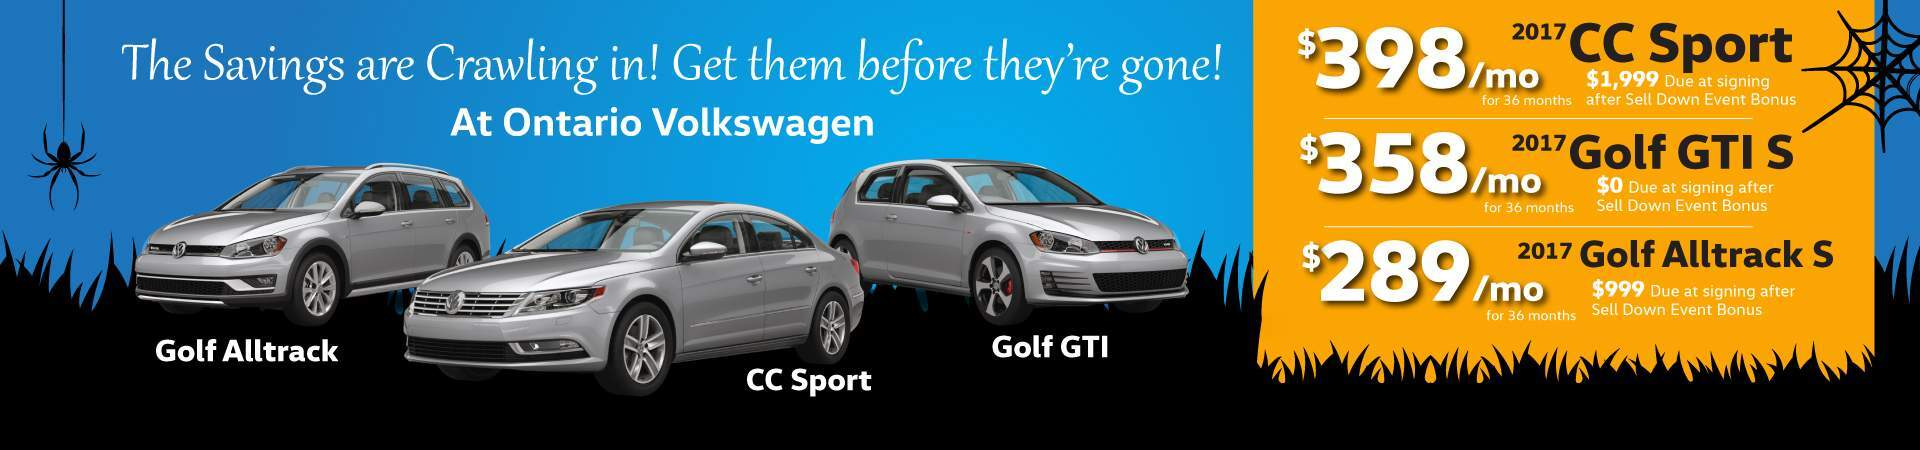 2017 Oct Golf and CC